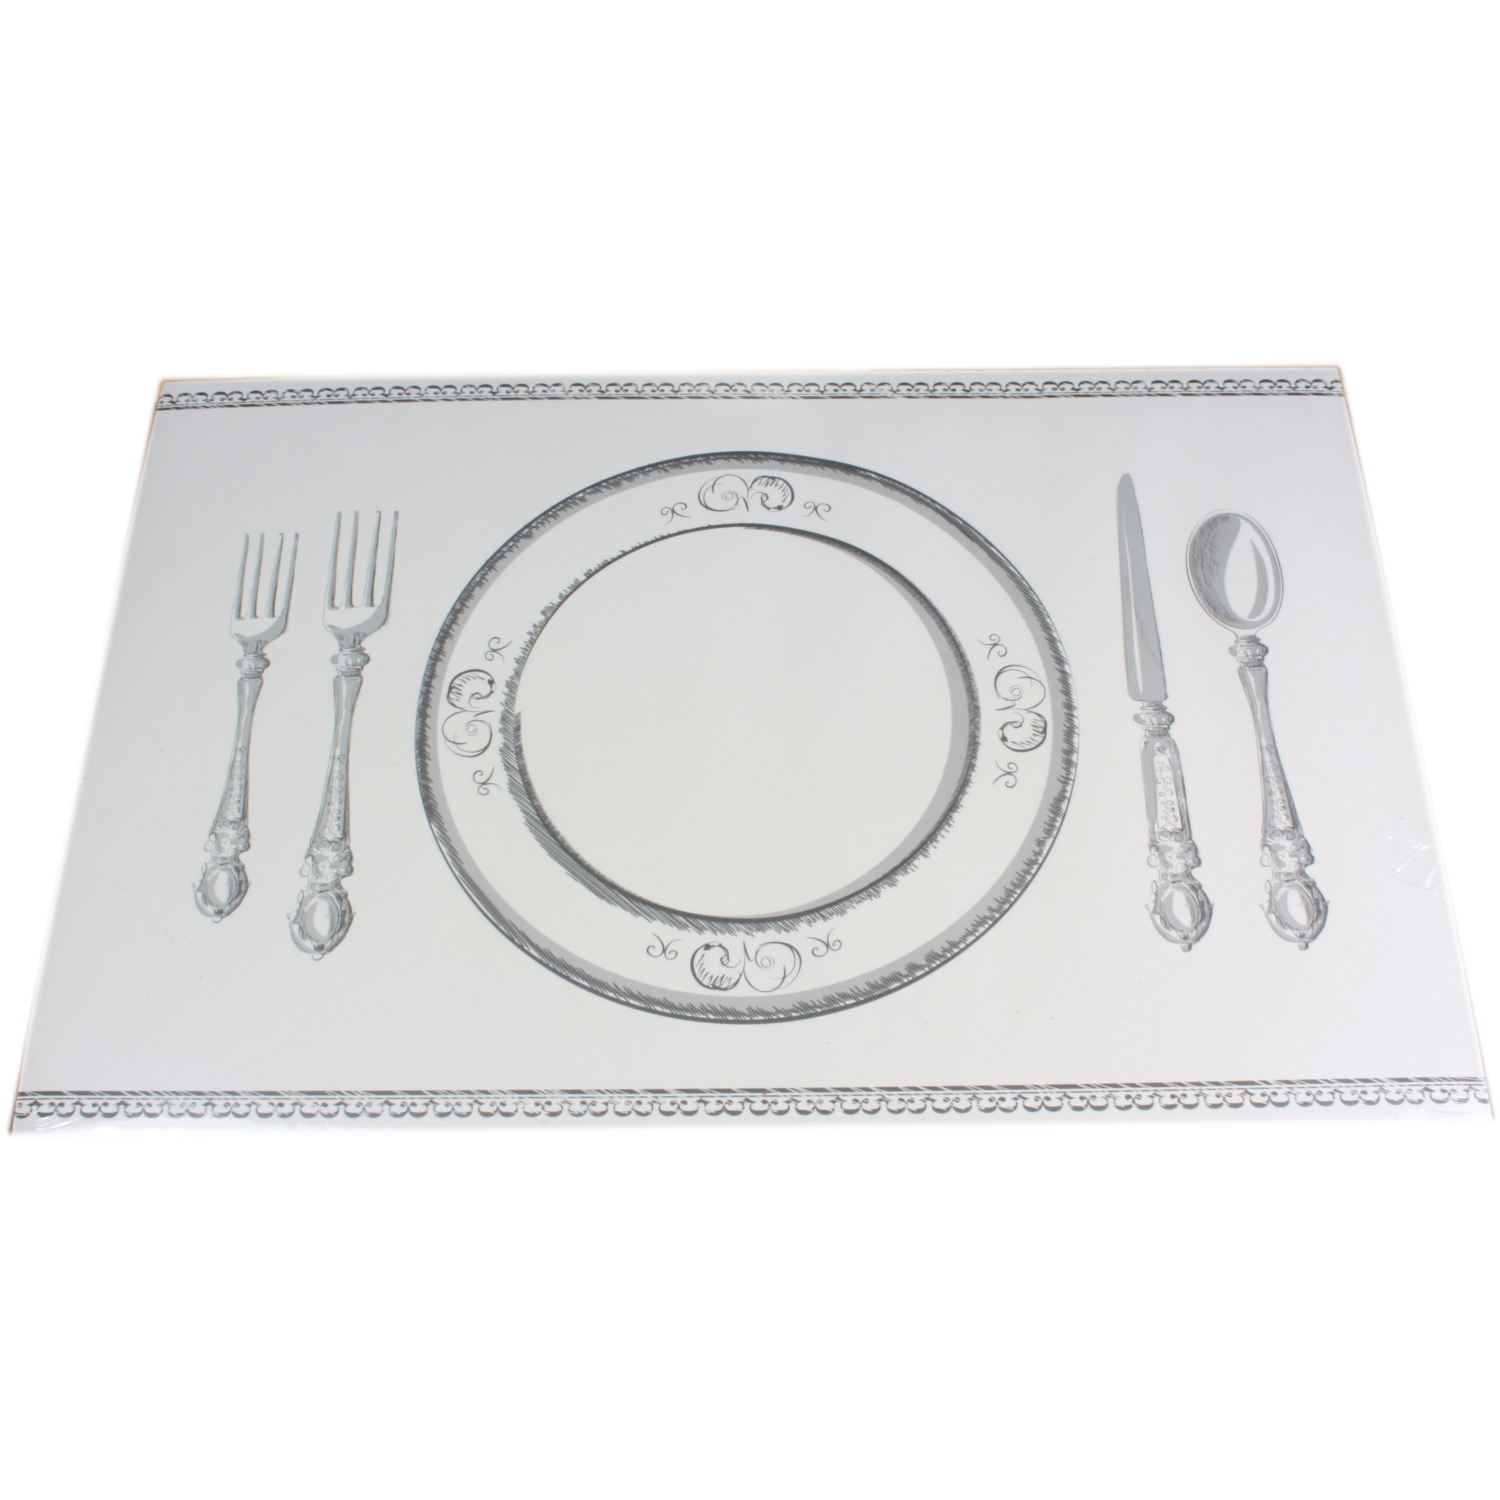 24x Banquet Style Disposable Paper Placemats Table Place